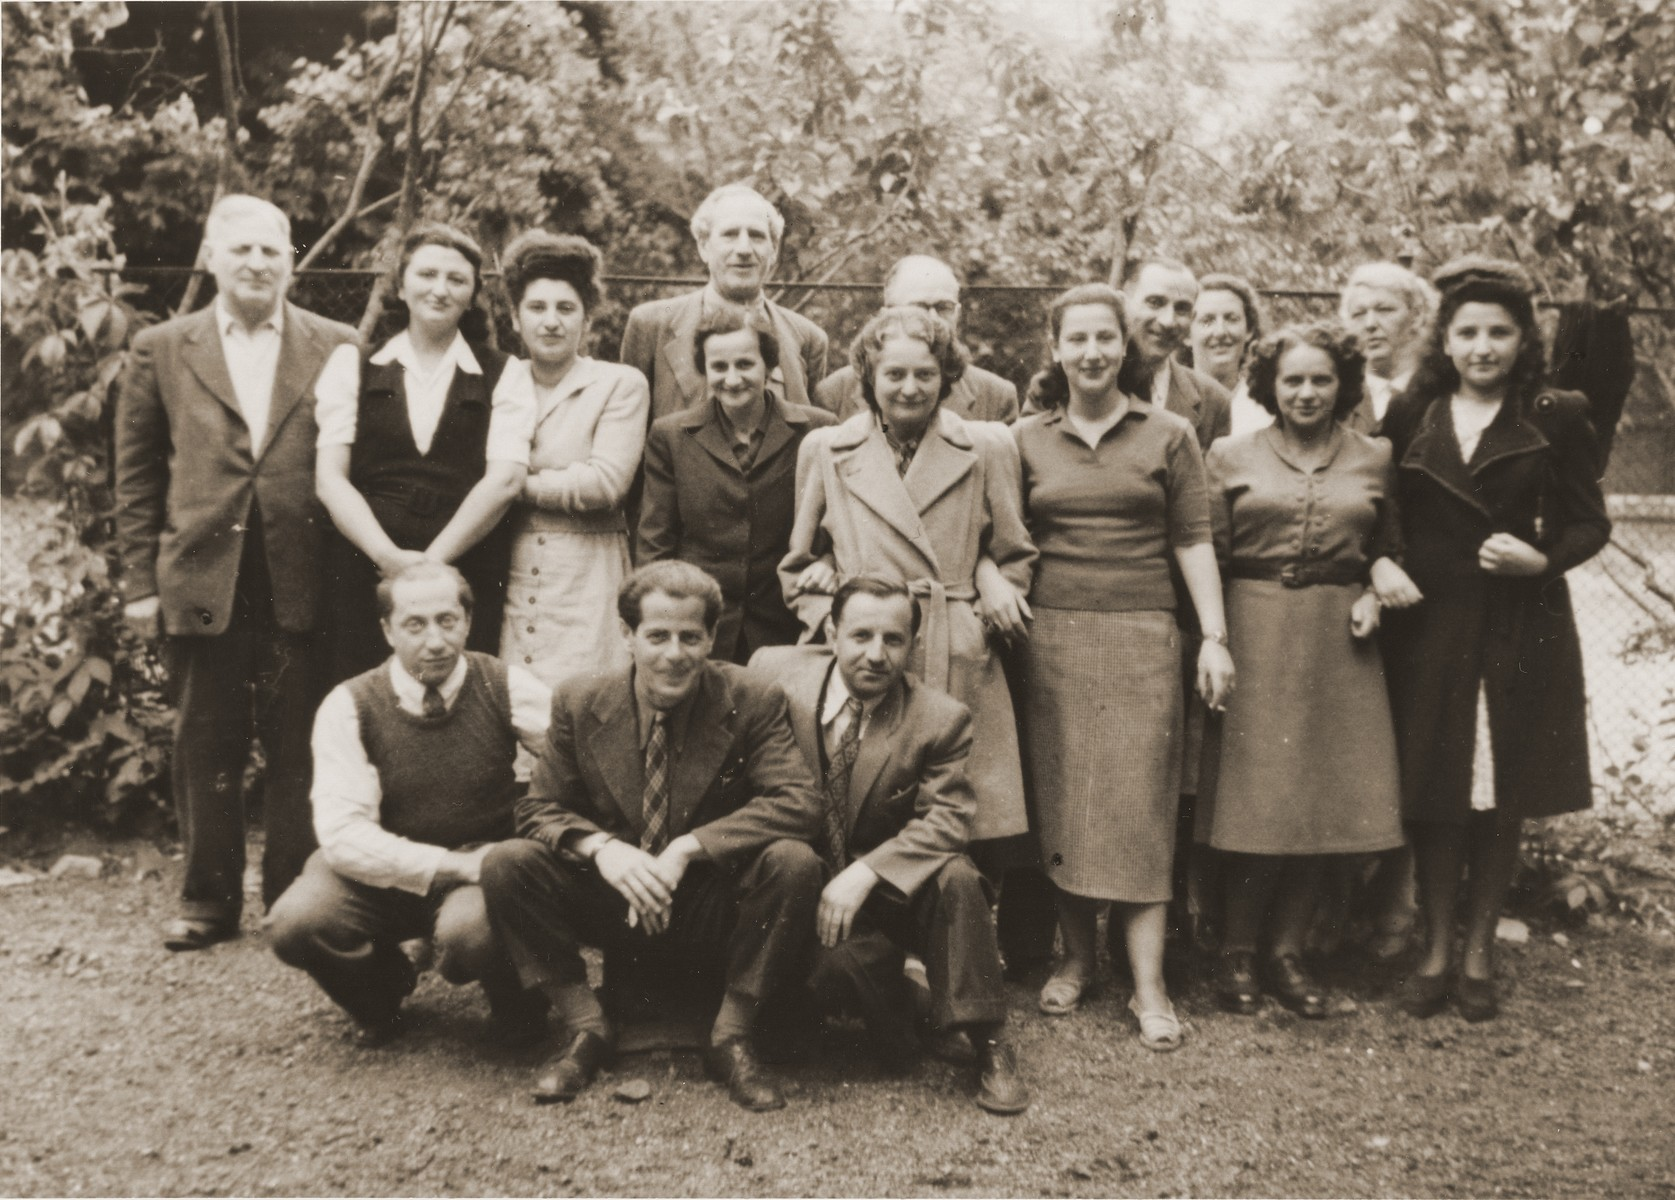 Members of the staff of the Rothschild Hospital pose on the hospital's grounds.  Those pictured include Kravetz, head of internal security, Abel Birman, Moshe Goldfinger, Margot Feuer and Duli Katz.